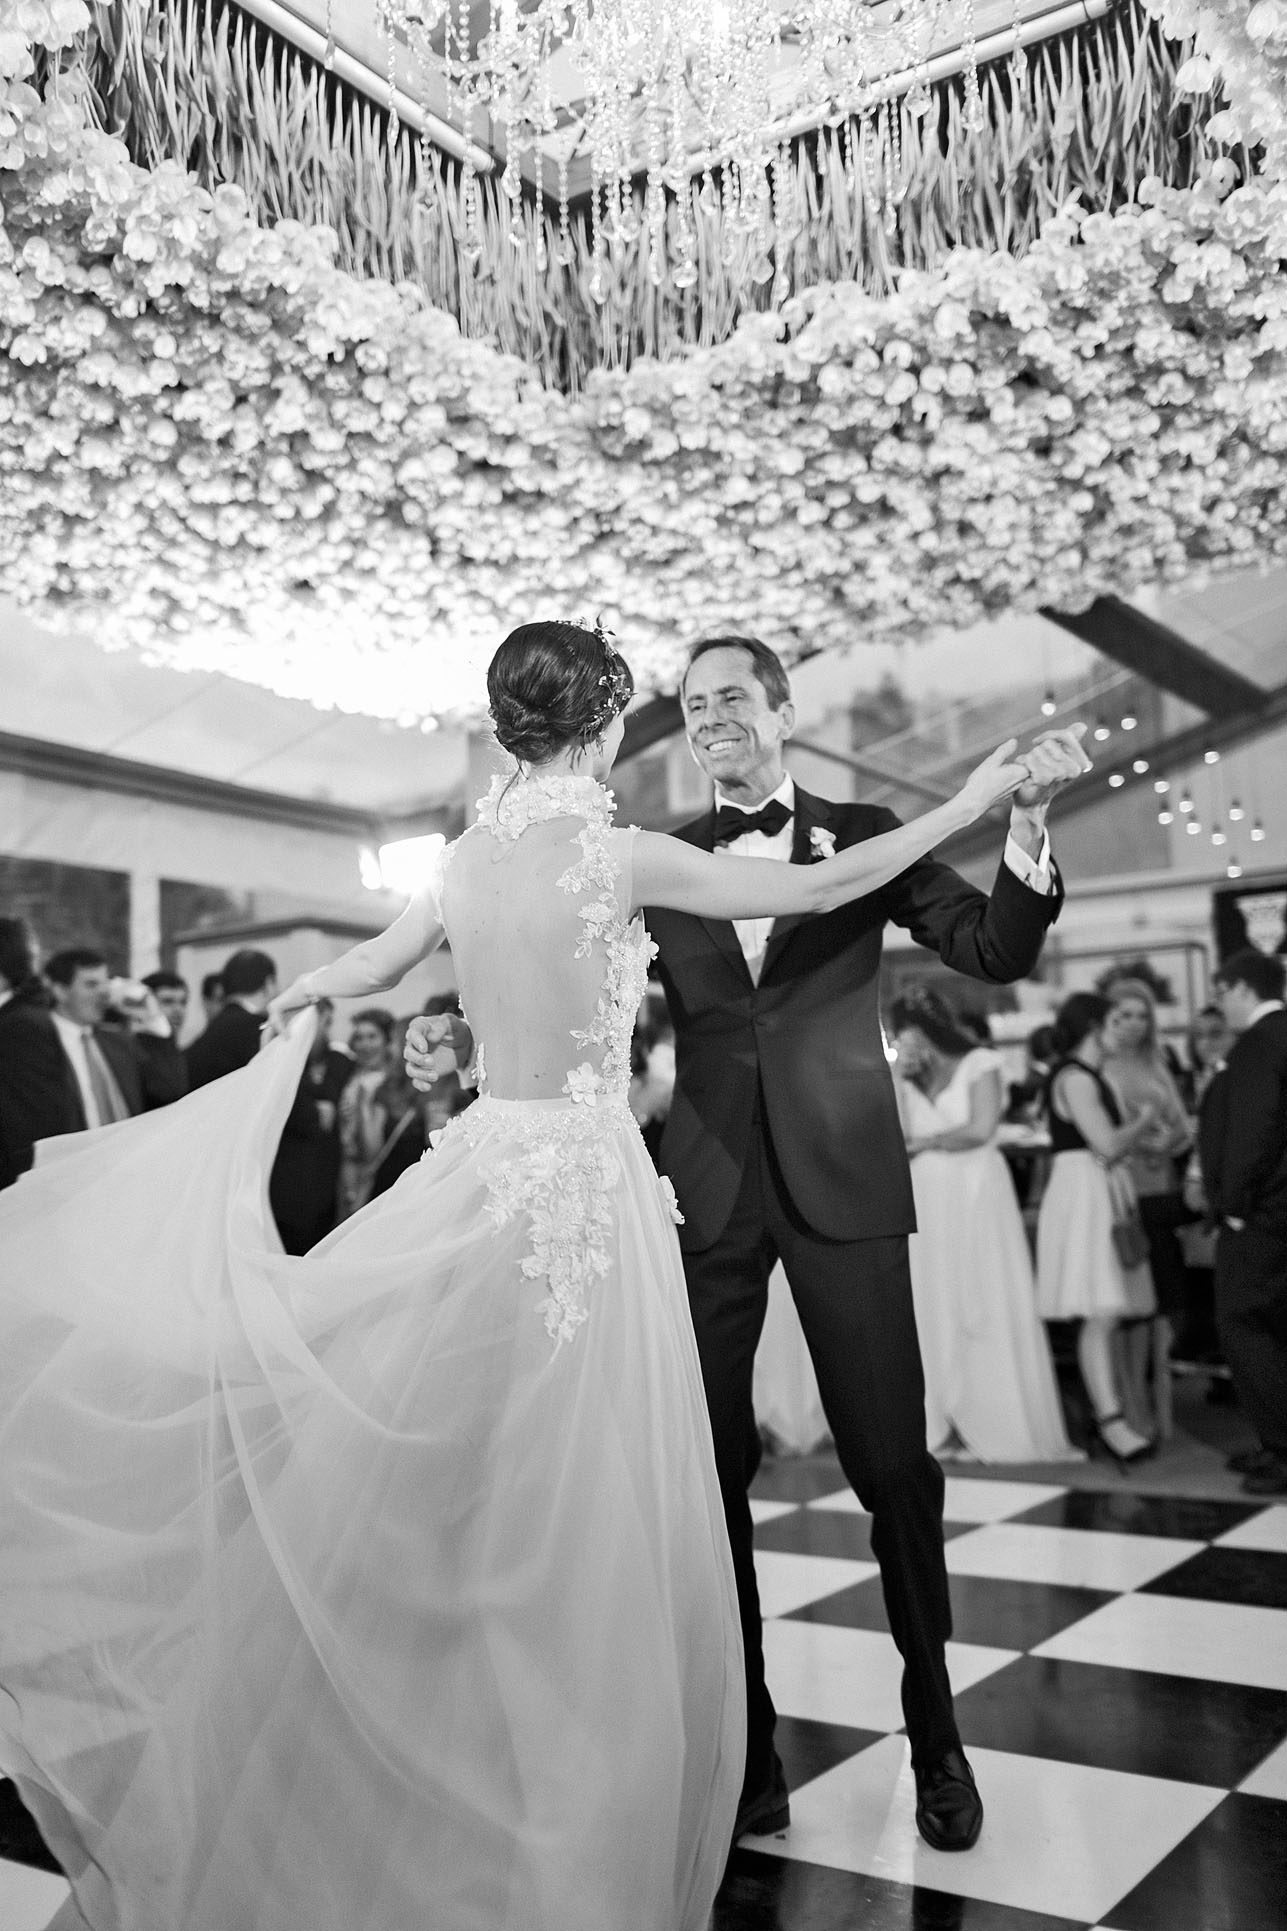 This Once Was My Favorite A Father Daughter Dance Keepsake for Father of the Bride Of All of Our Dances Together To Dad for Your Wedding